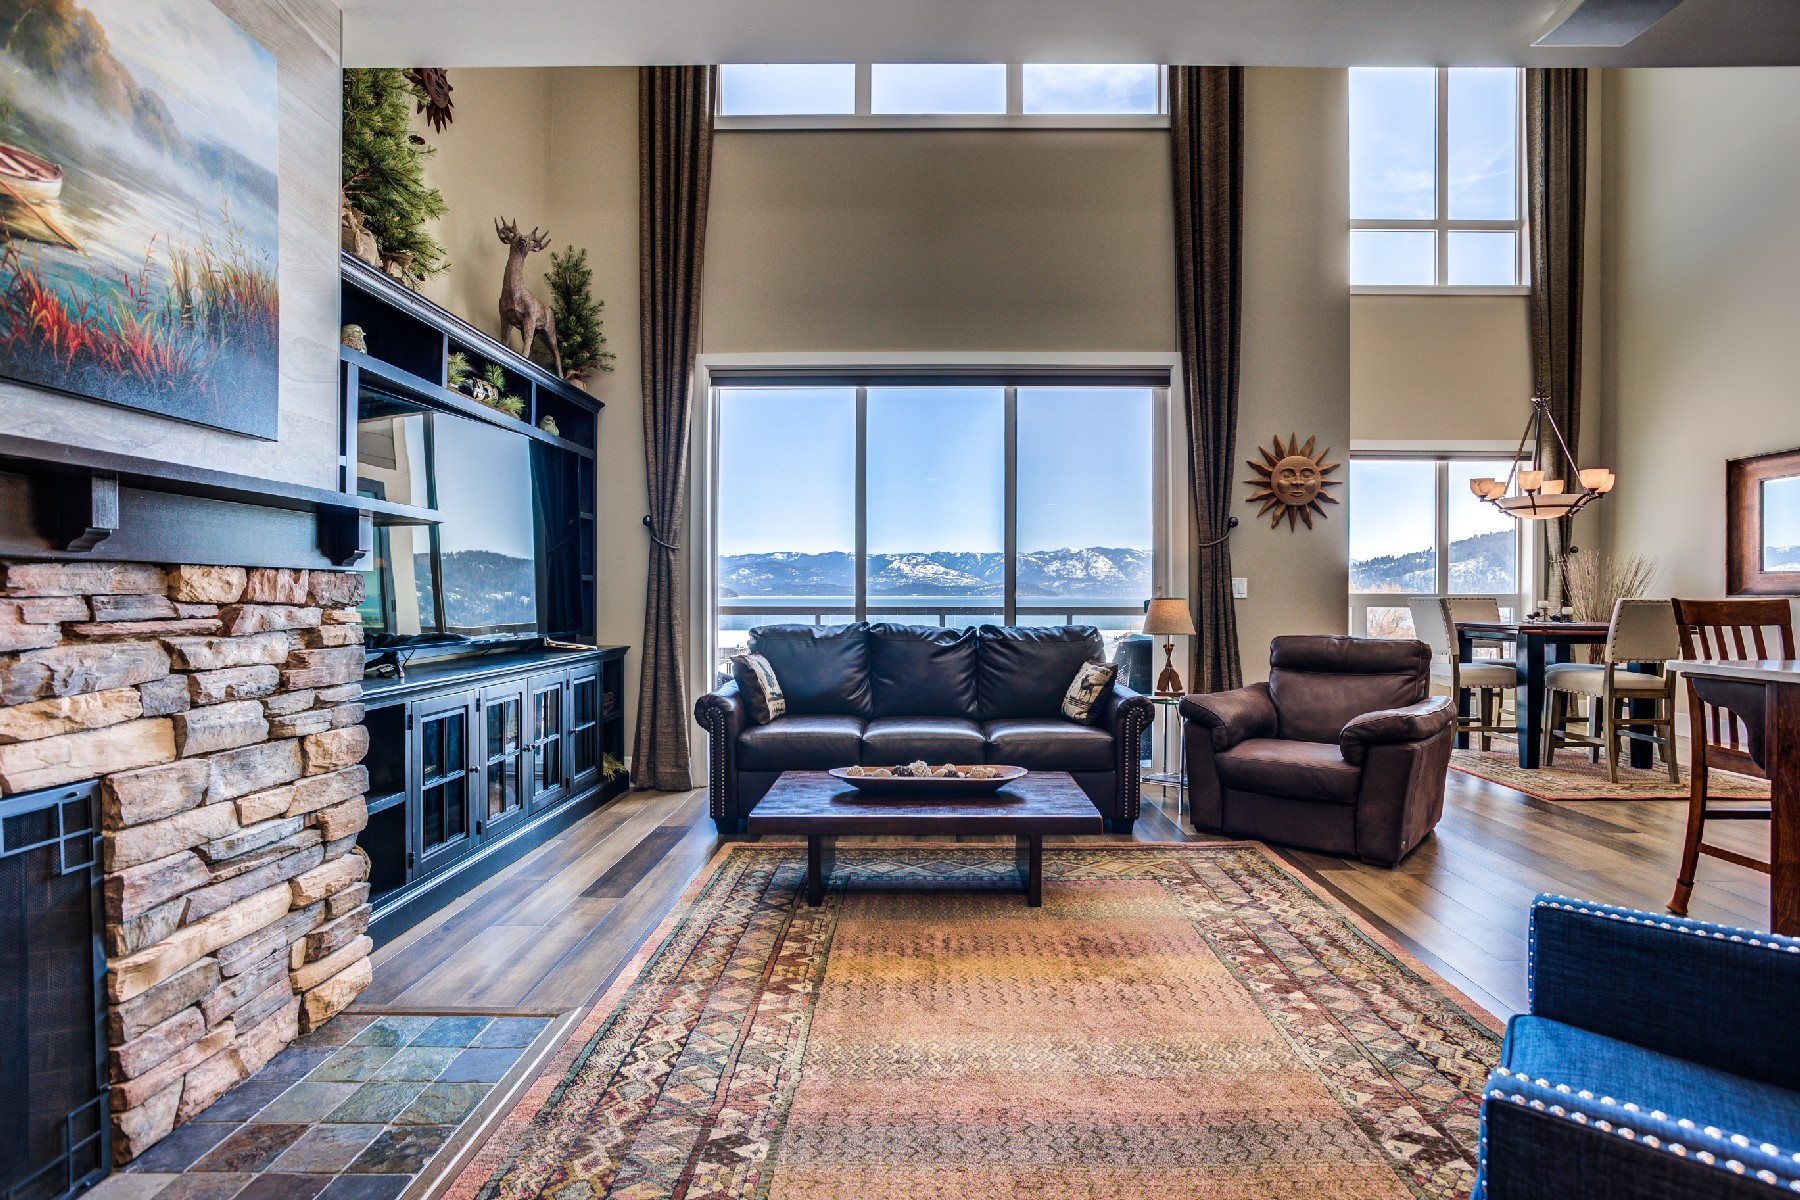 Single Family Homes for Active at Penthouse Seasons at Sandpoint 402 Sandpoint Ave #322 Sandpoint, Idaho 83864 United States